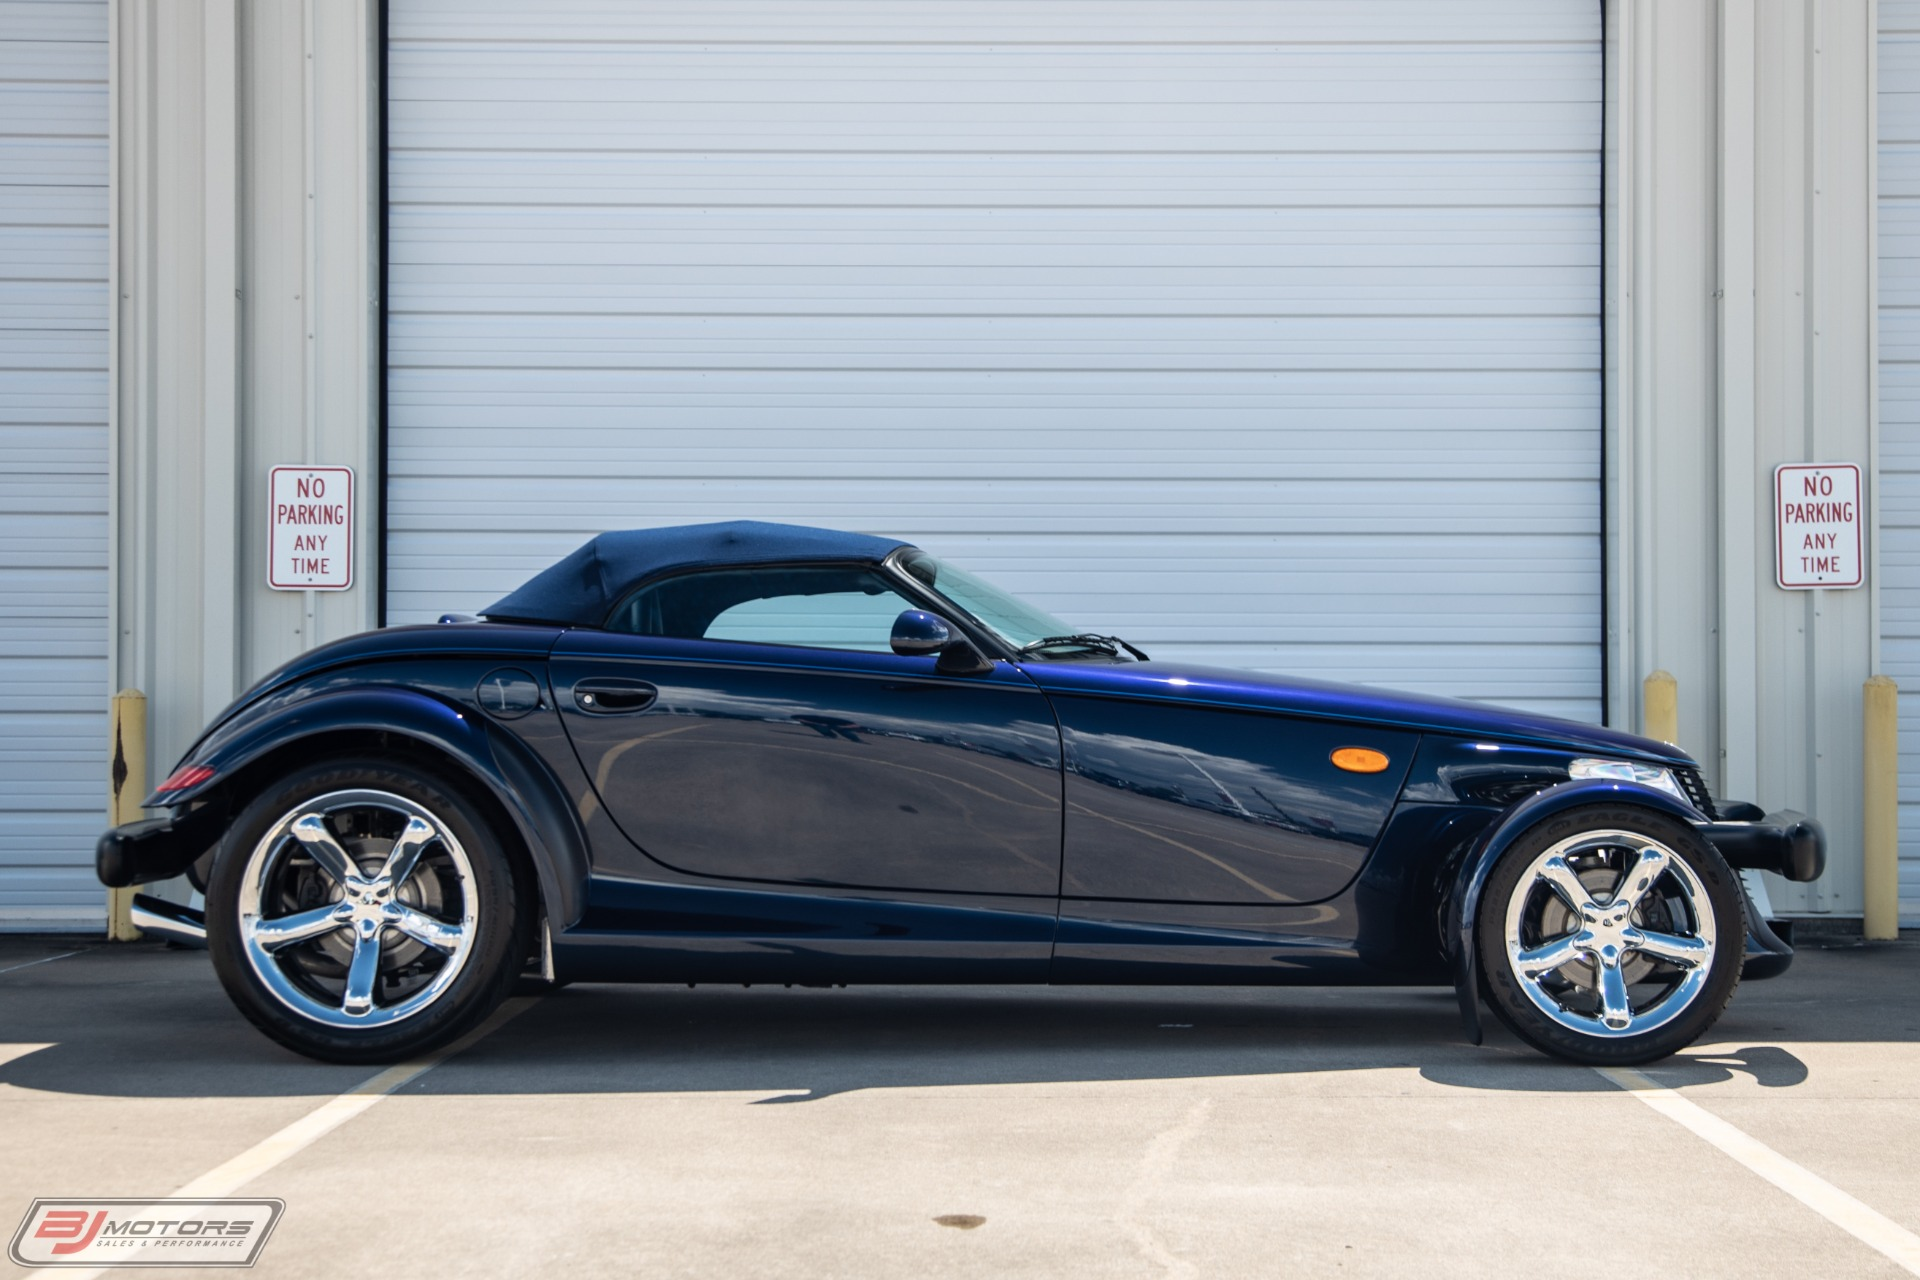 Used-2001-Chrysler-Prowler-Mulholland-Edition